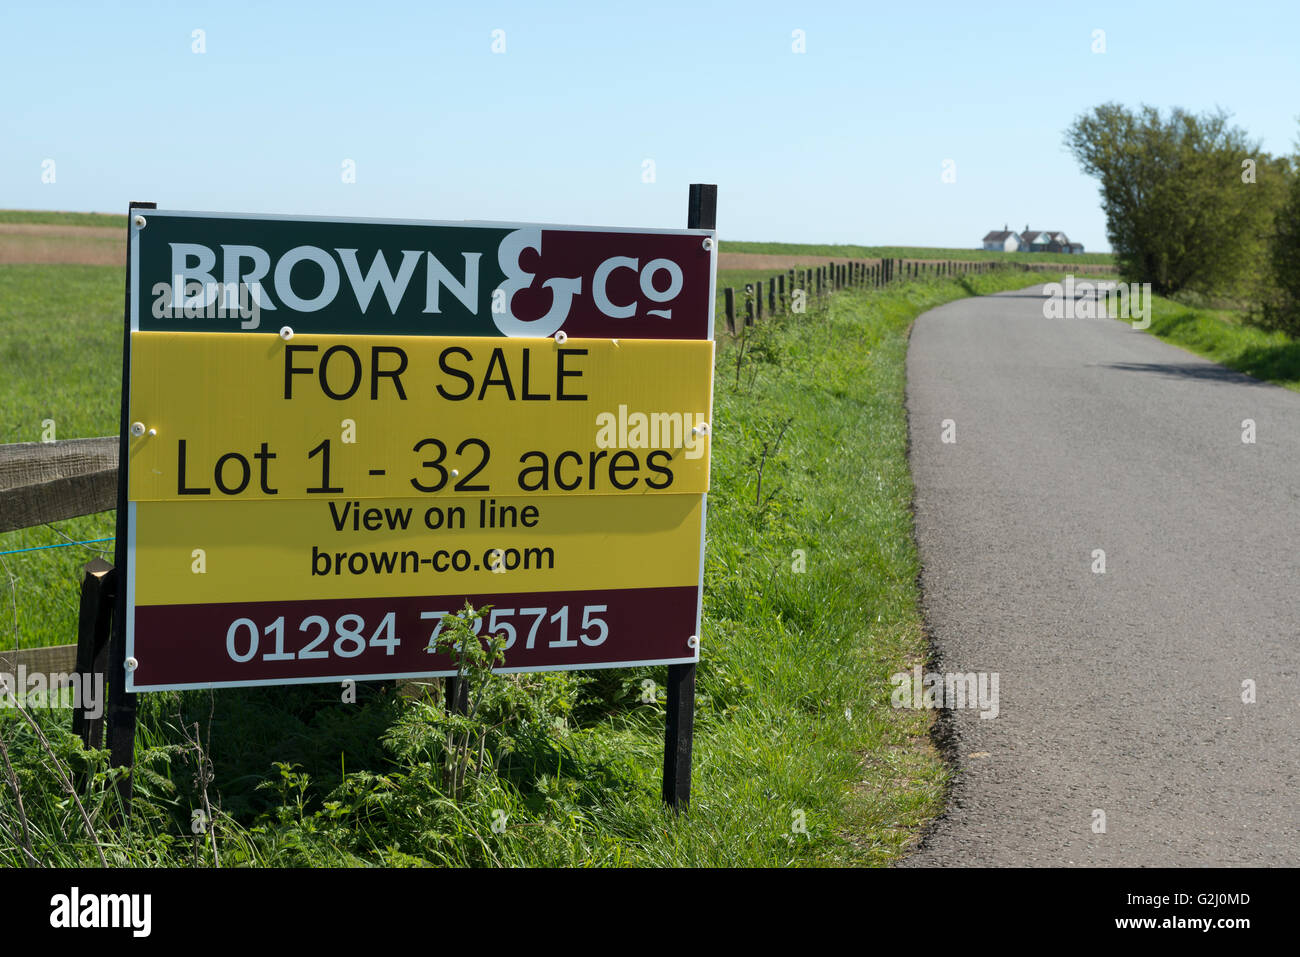 Brown & Co land for sale sales board - Stock Image